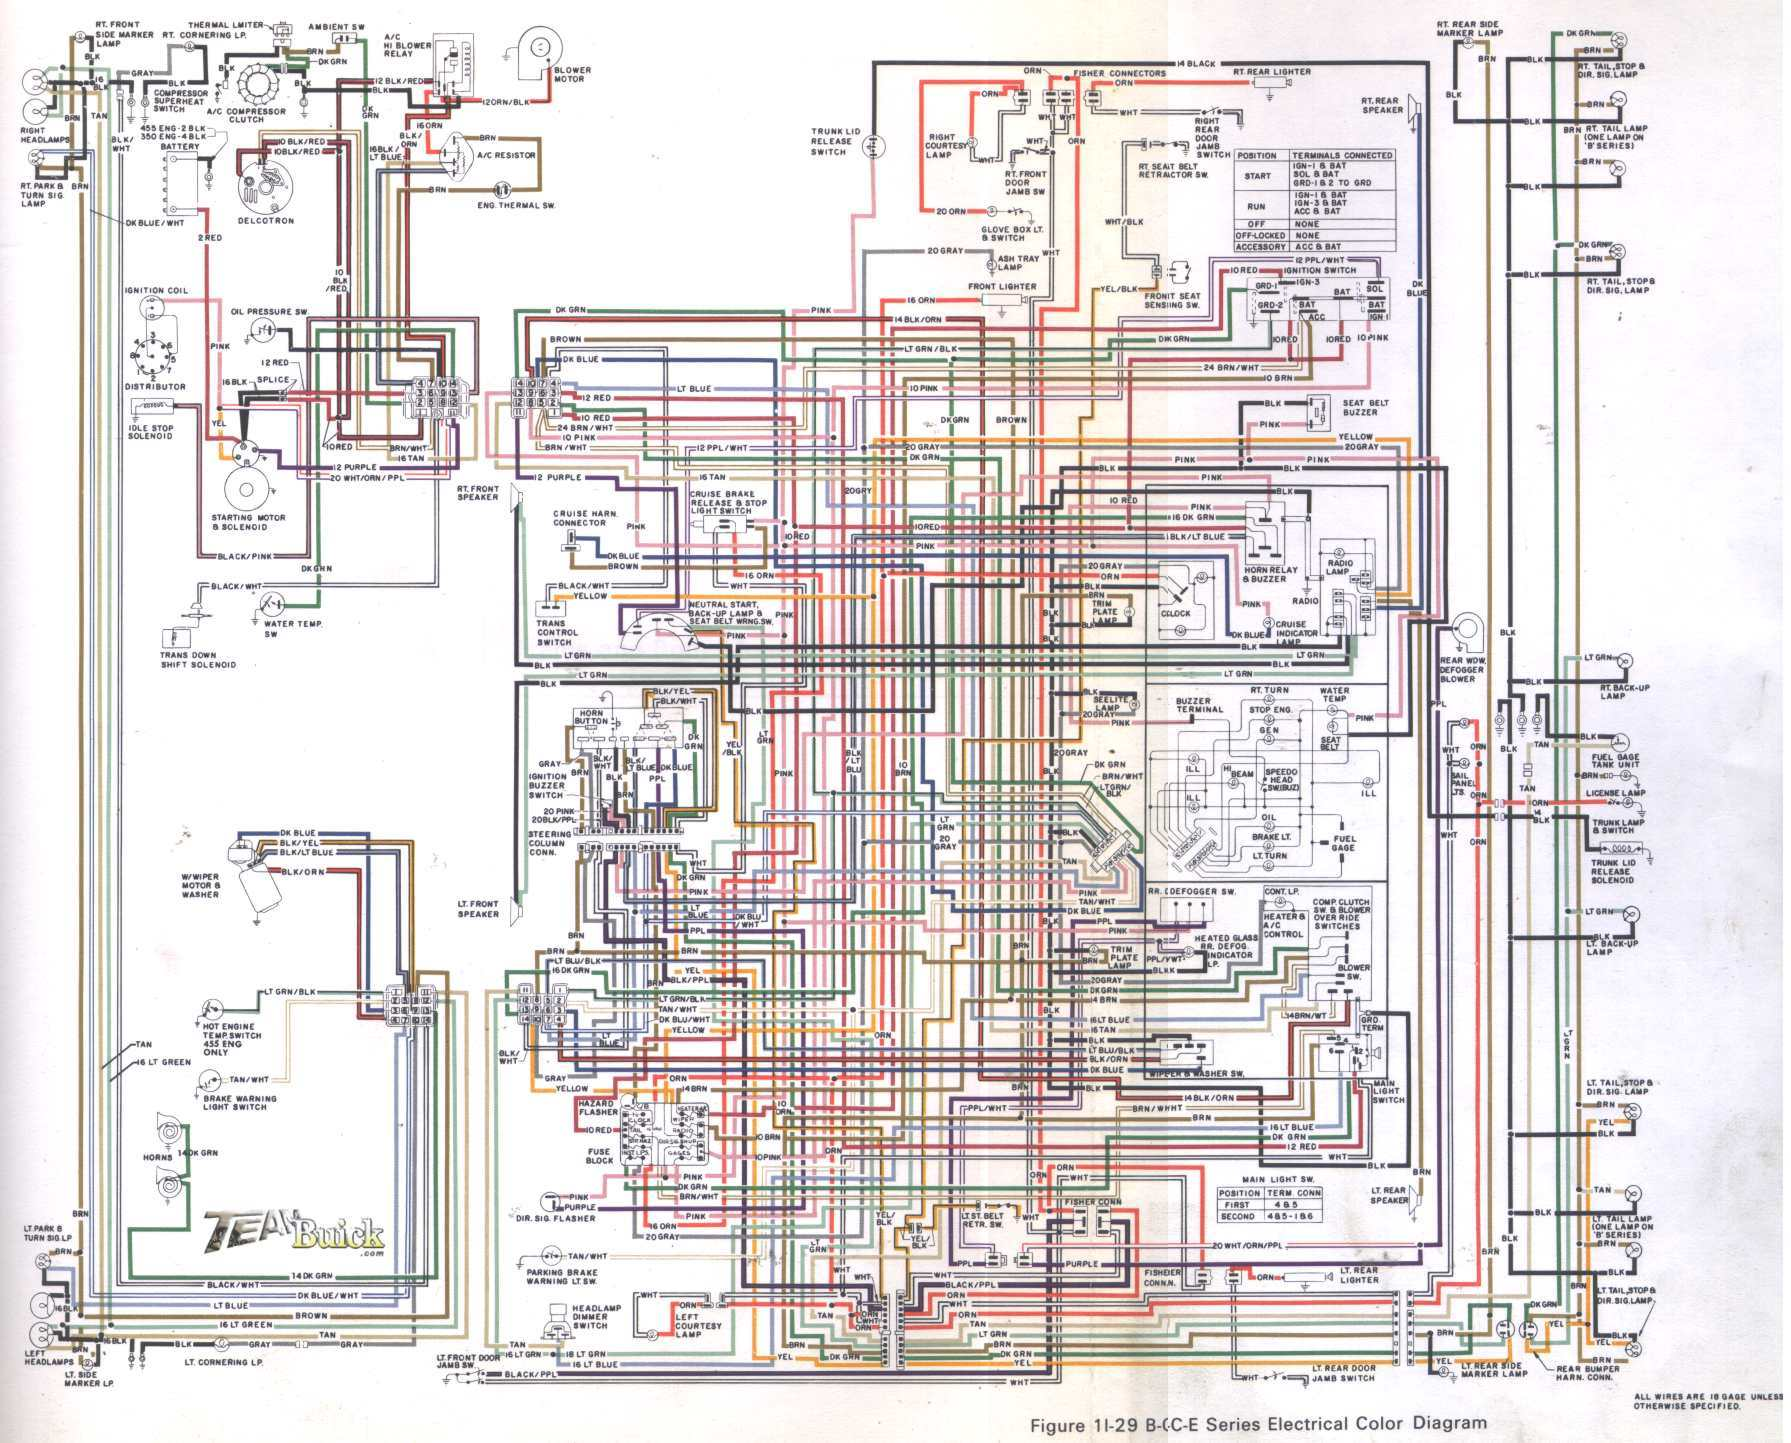 1988 Jeep Wagoneer Wiring Diagrams Diagram Will Be A Thing Cherokee Stereo For 89 Buick Fuel System Elsavadorla Grand Horn